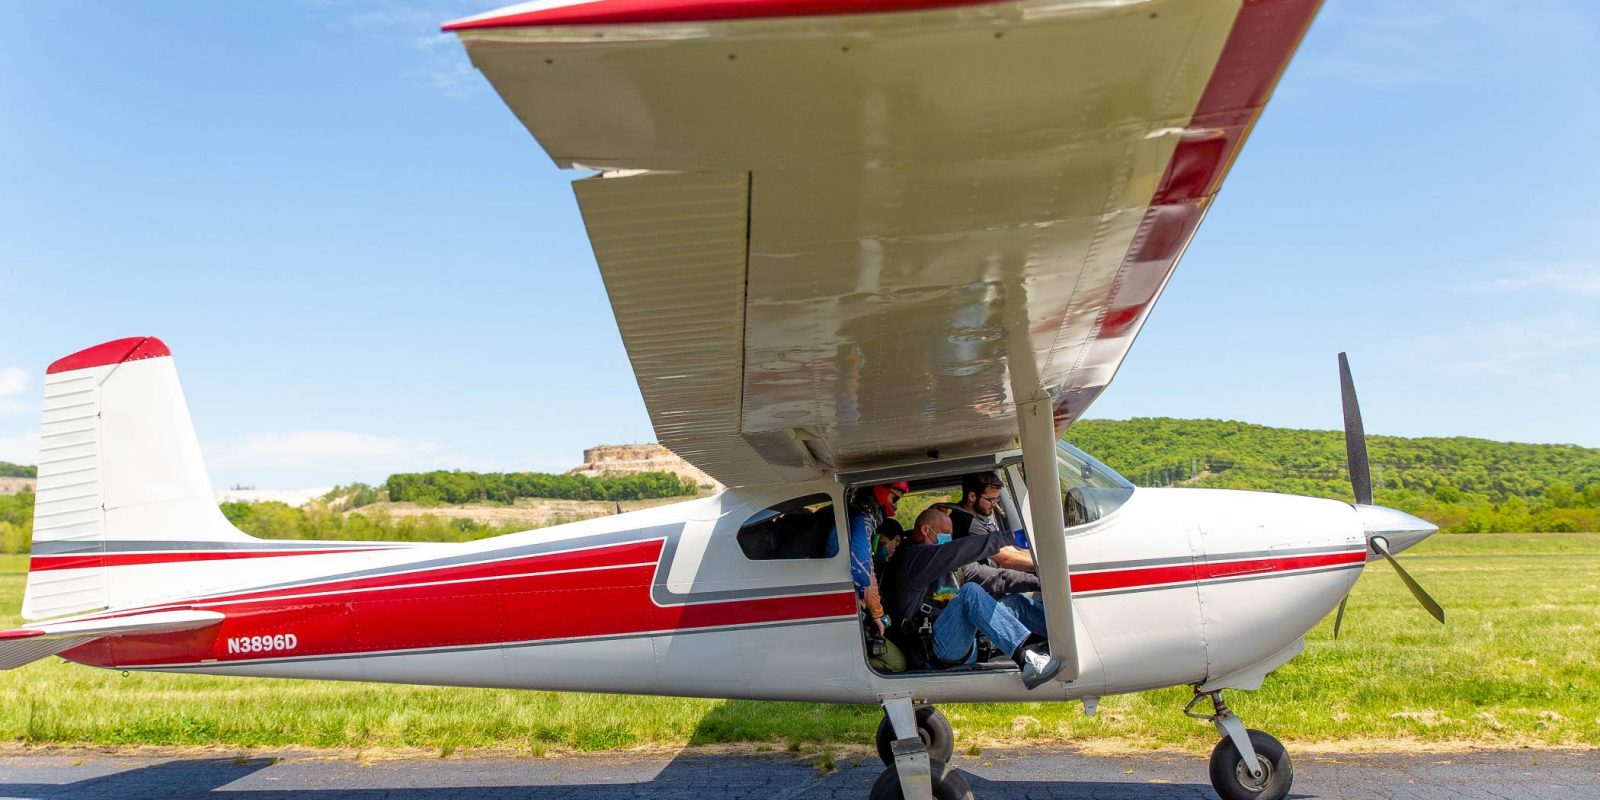 Tandem skydiving plane about to take off and is within the weight limit